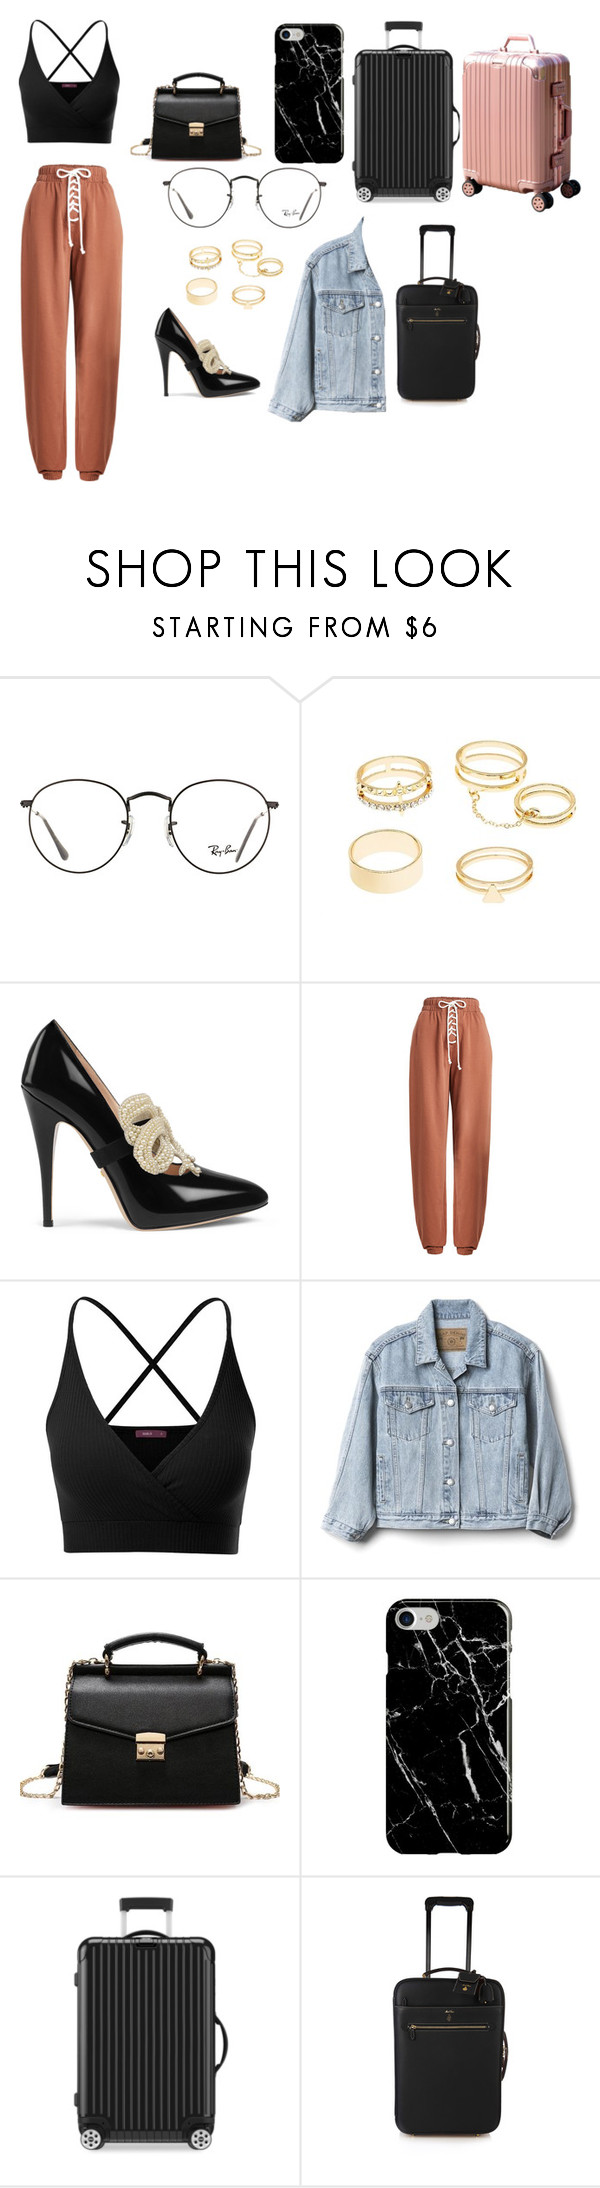 """Sem título #894"" by samaralucia on Polyvore featuring moda, Ray-Ban, Charlotte Russe, Gucci, Puma, Doublju, Gap, Recover, Rimowa e Mark Cross"